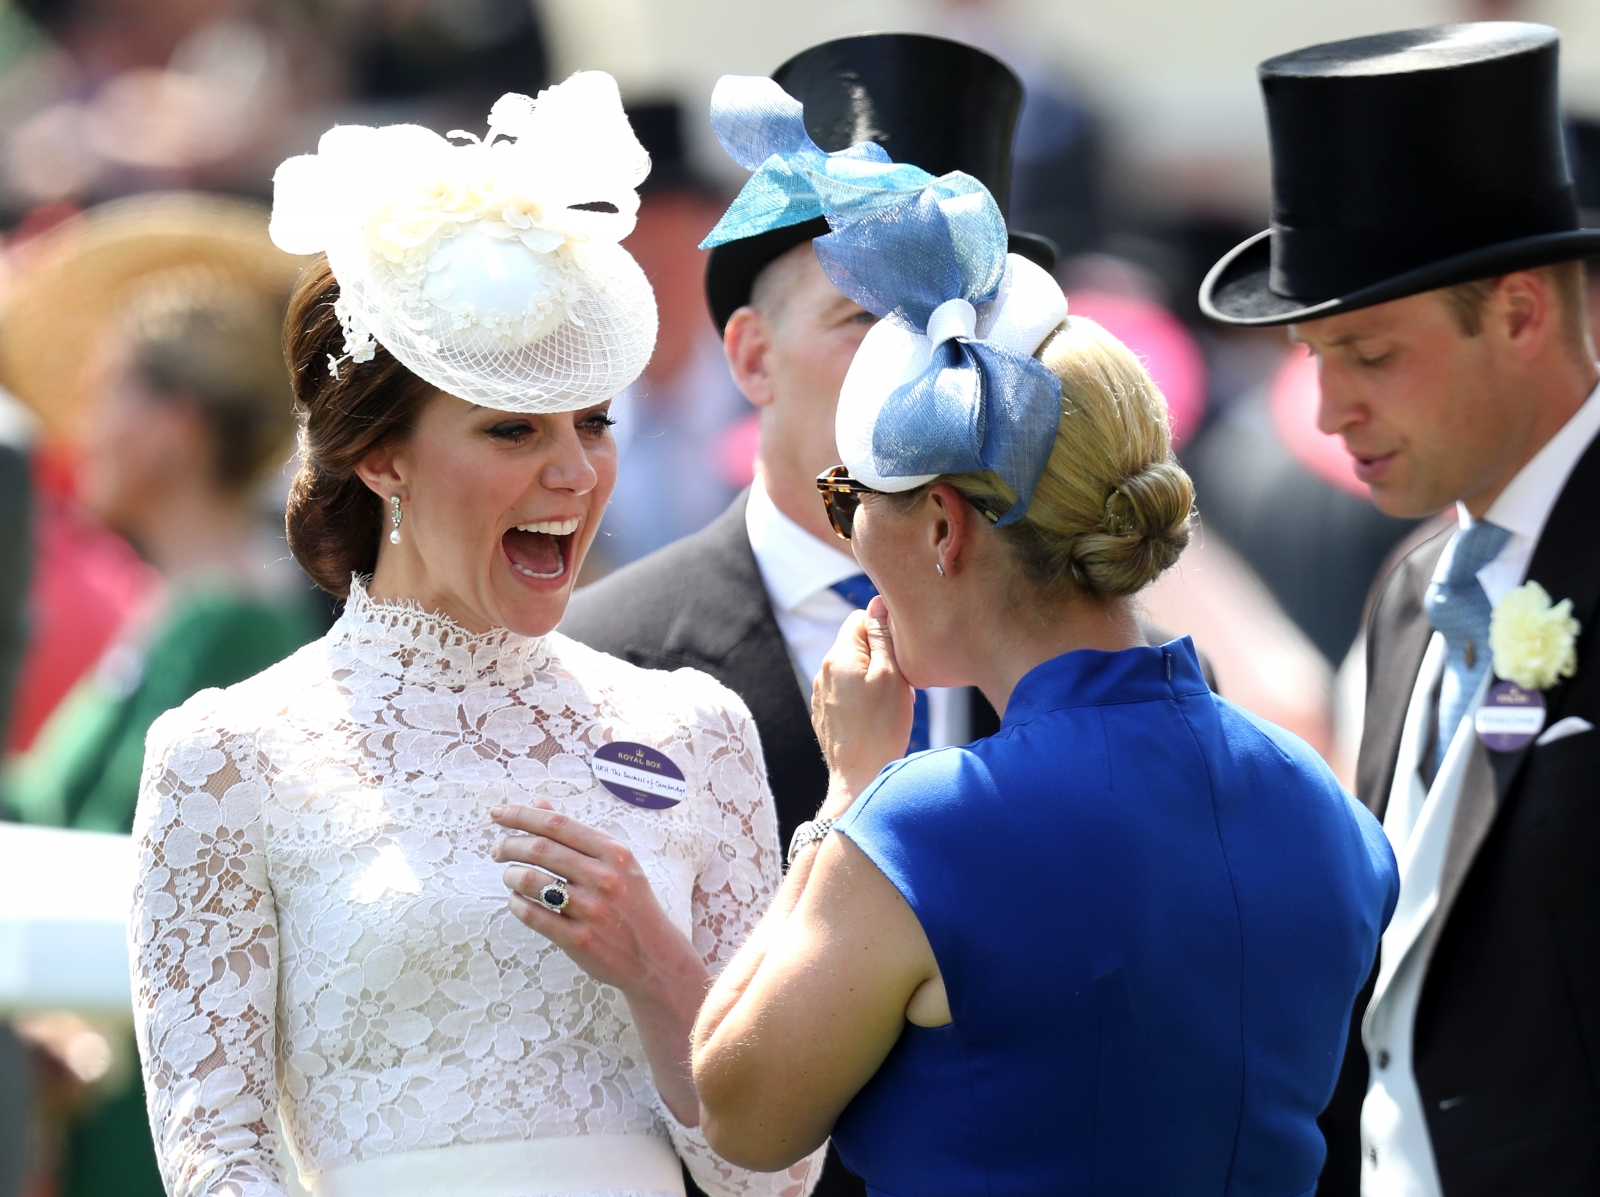 Royal Ascot: Racegoers remove jackets due to 'very hot' weather